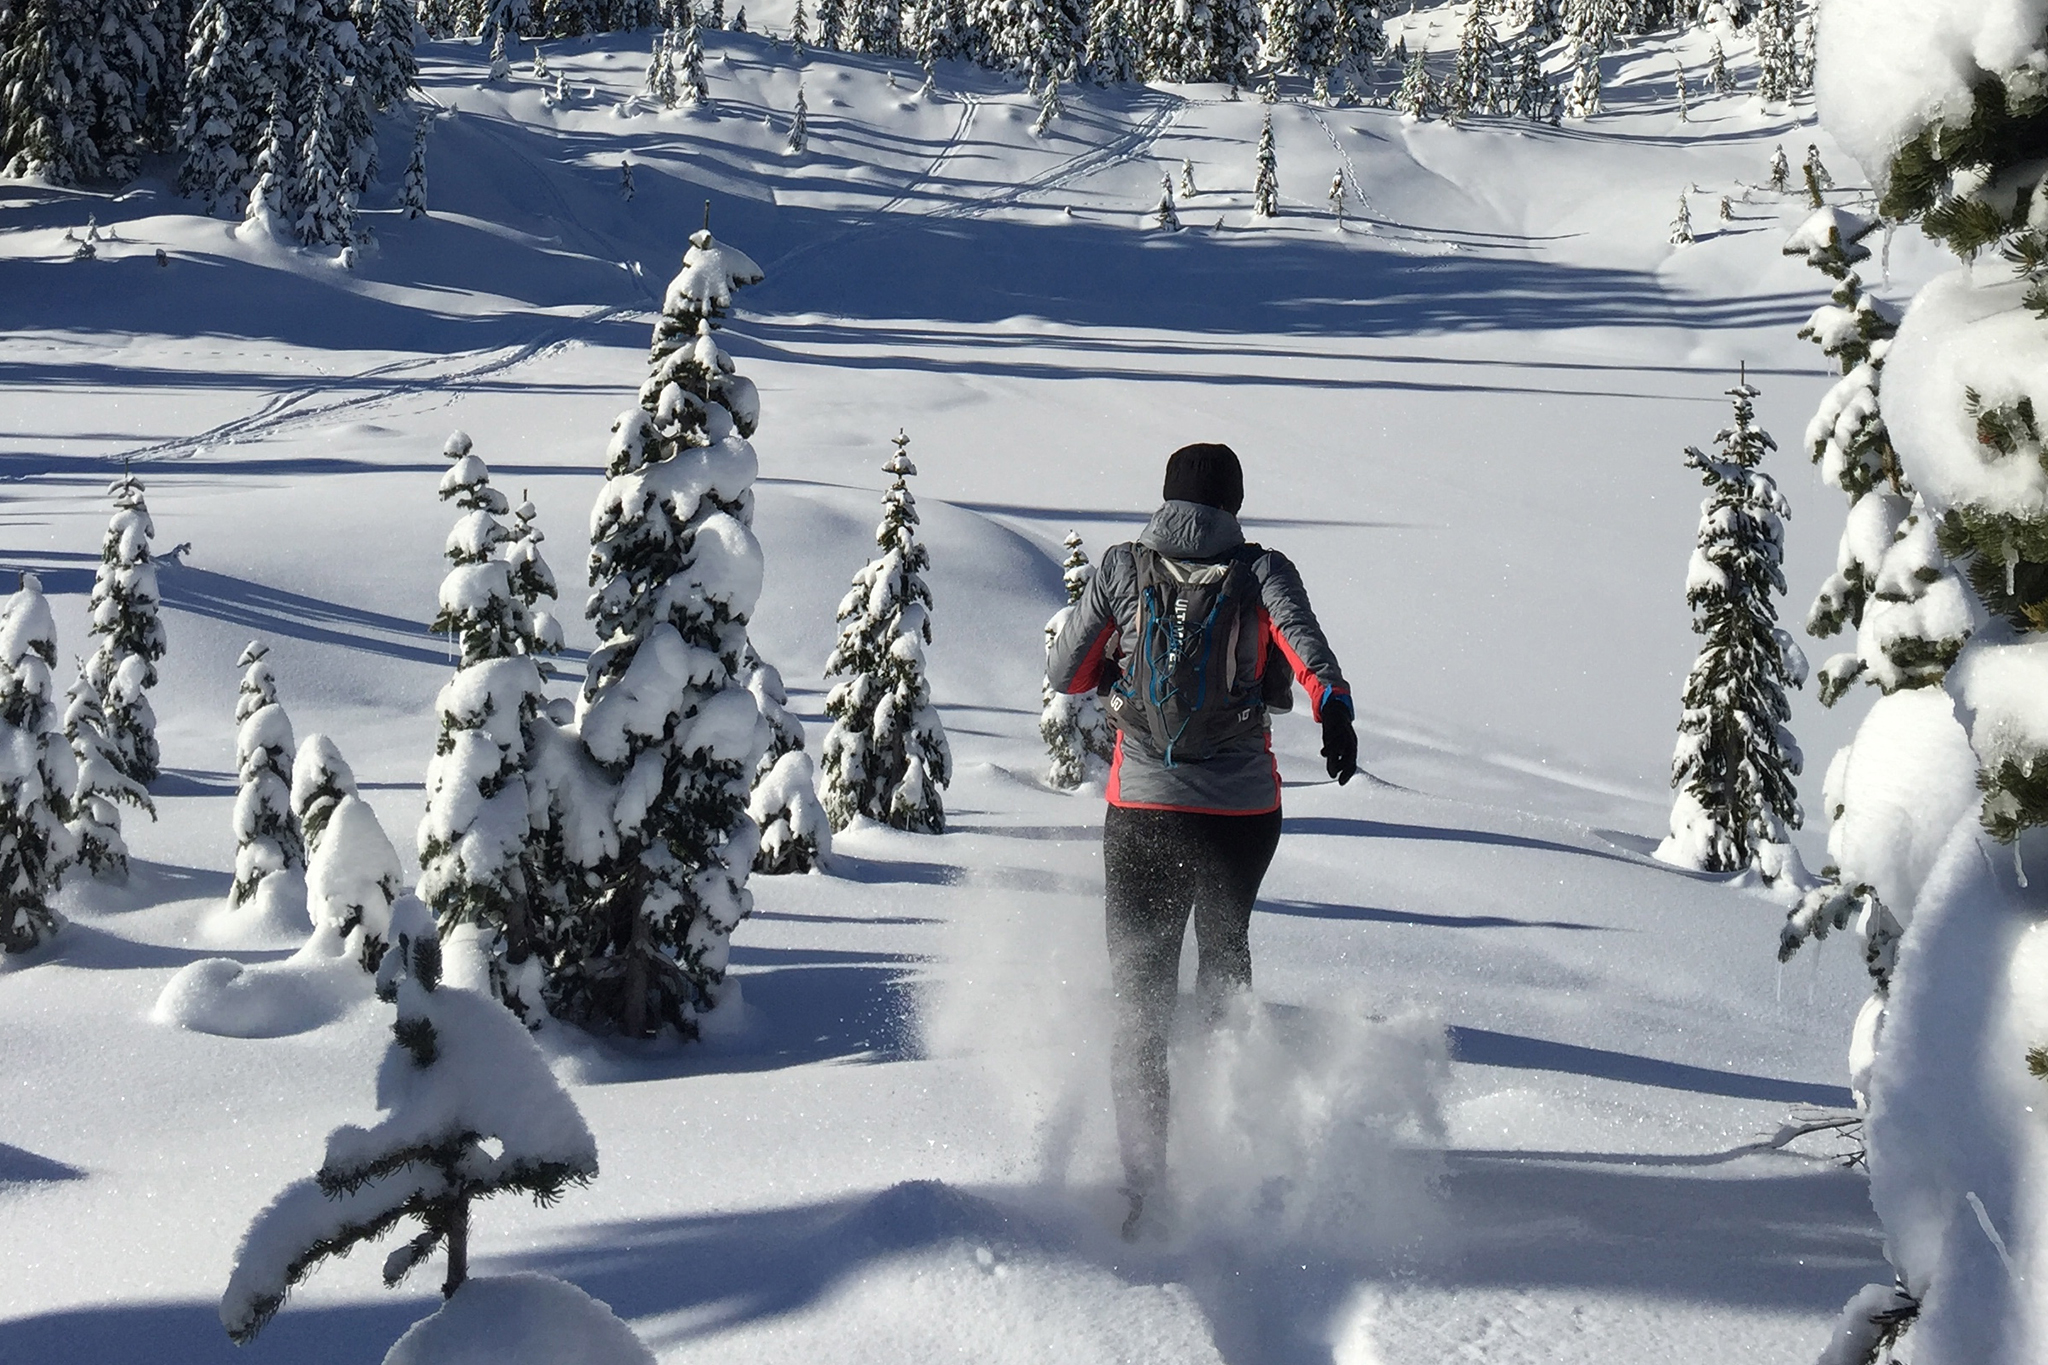 Backcountry Overnight Snowshoe Run - Explore Callaghan Country as we run into a remote lodge for the night and enjoy delicious food and a comfortable lodge.